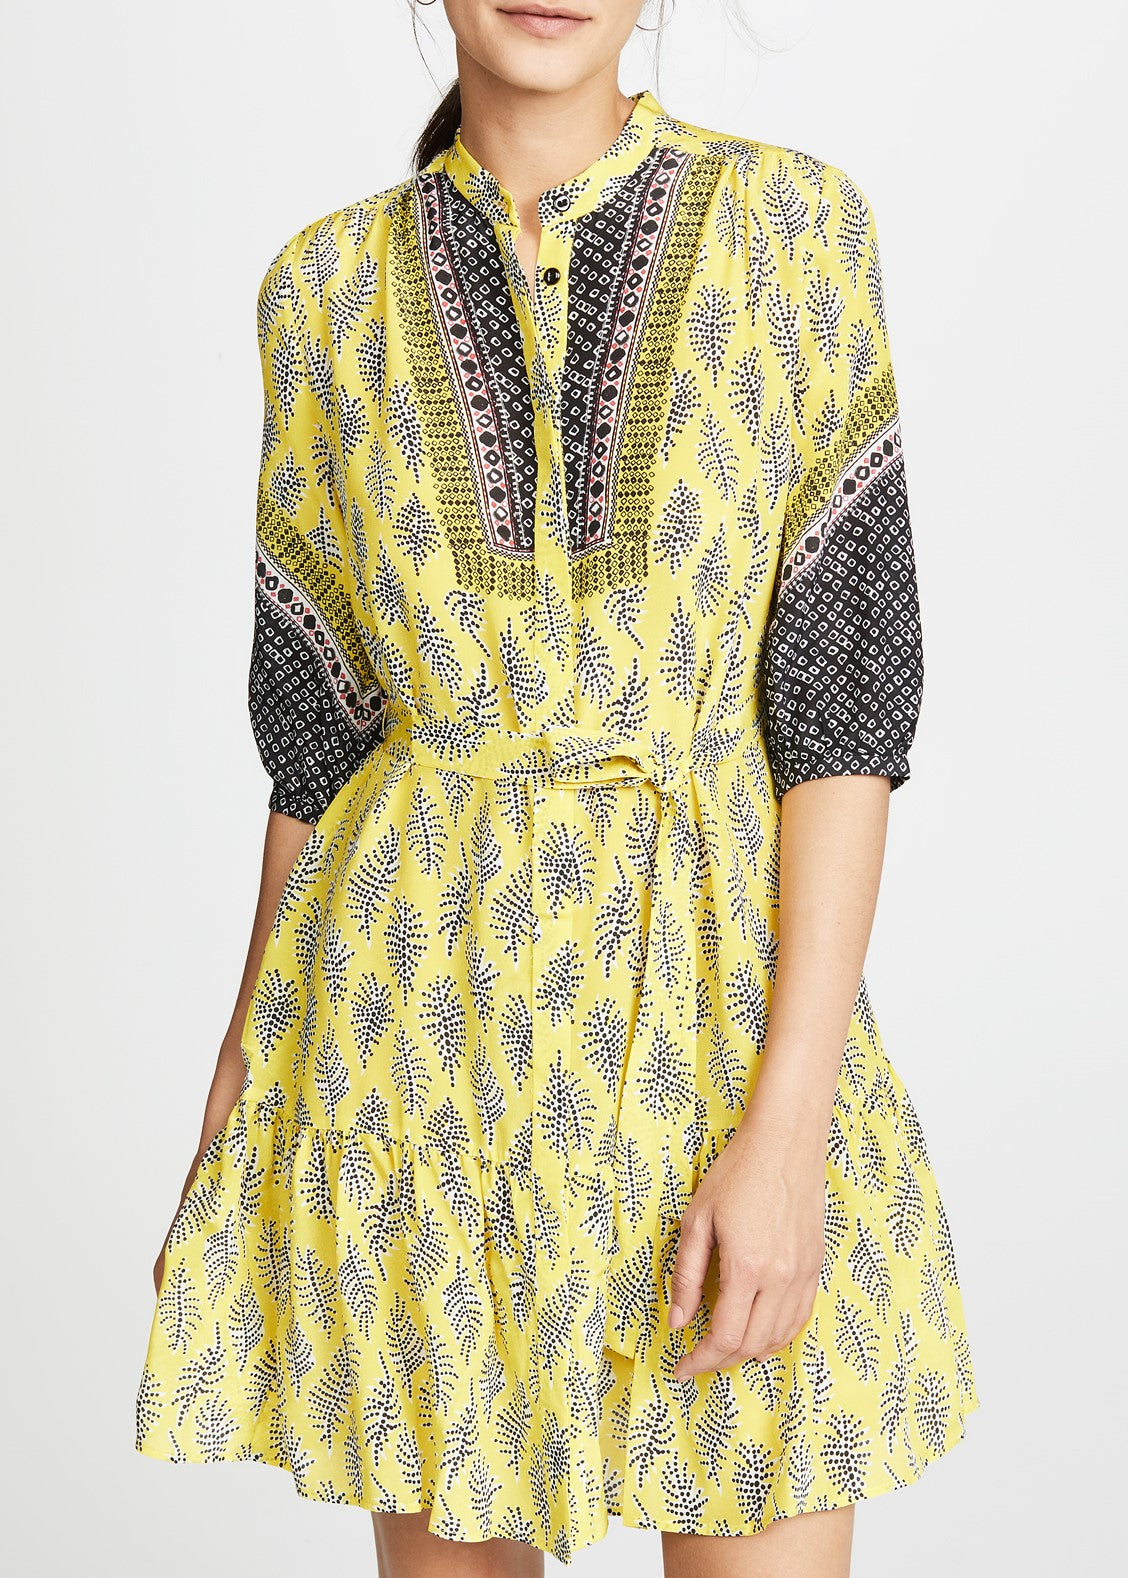 Saloni Tyra dress in golden fringe plmt